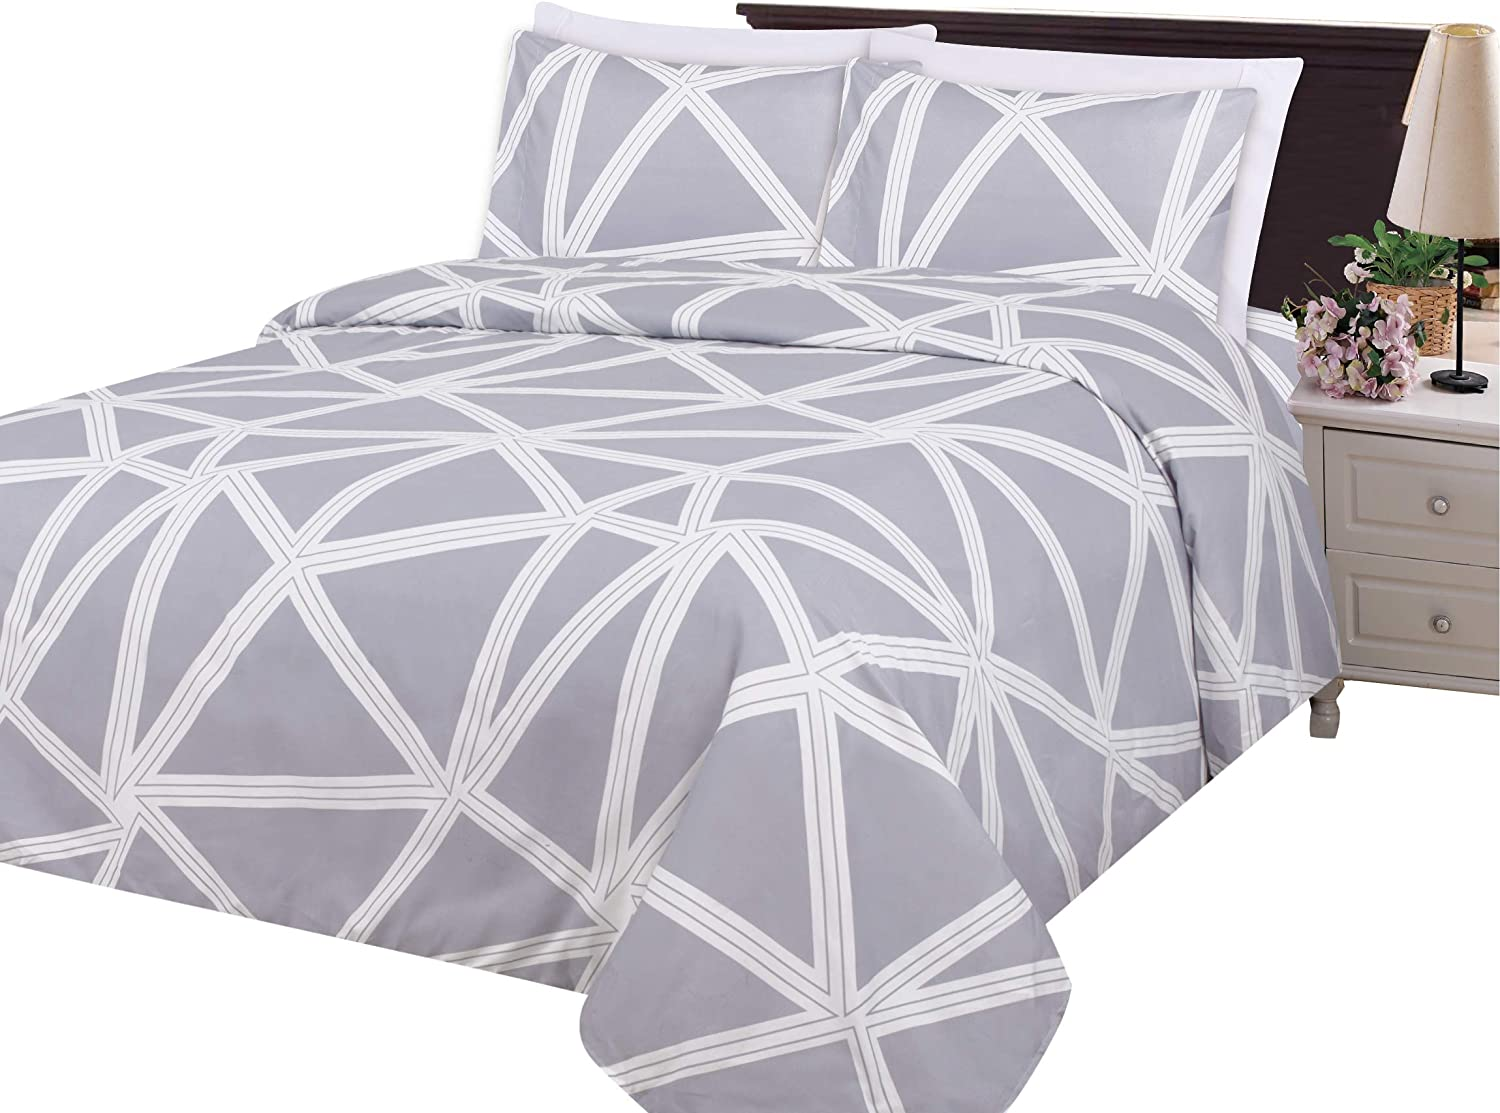 Bamboo Living Ultra Soft Silky Deep Pocket Rich Printed Rayon from Bamboo All Season 6 Pieces Sheet Set with 4 Pillowcases, Triangle Geometric Pattern Queen Size